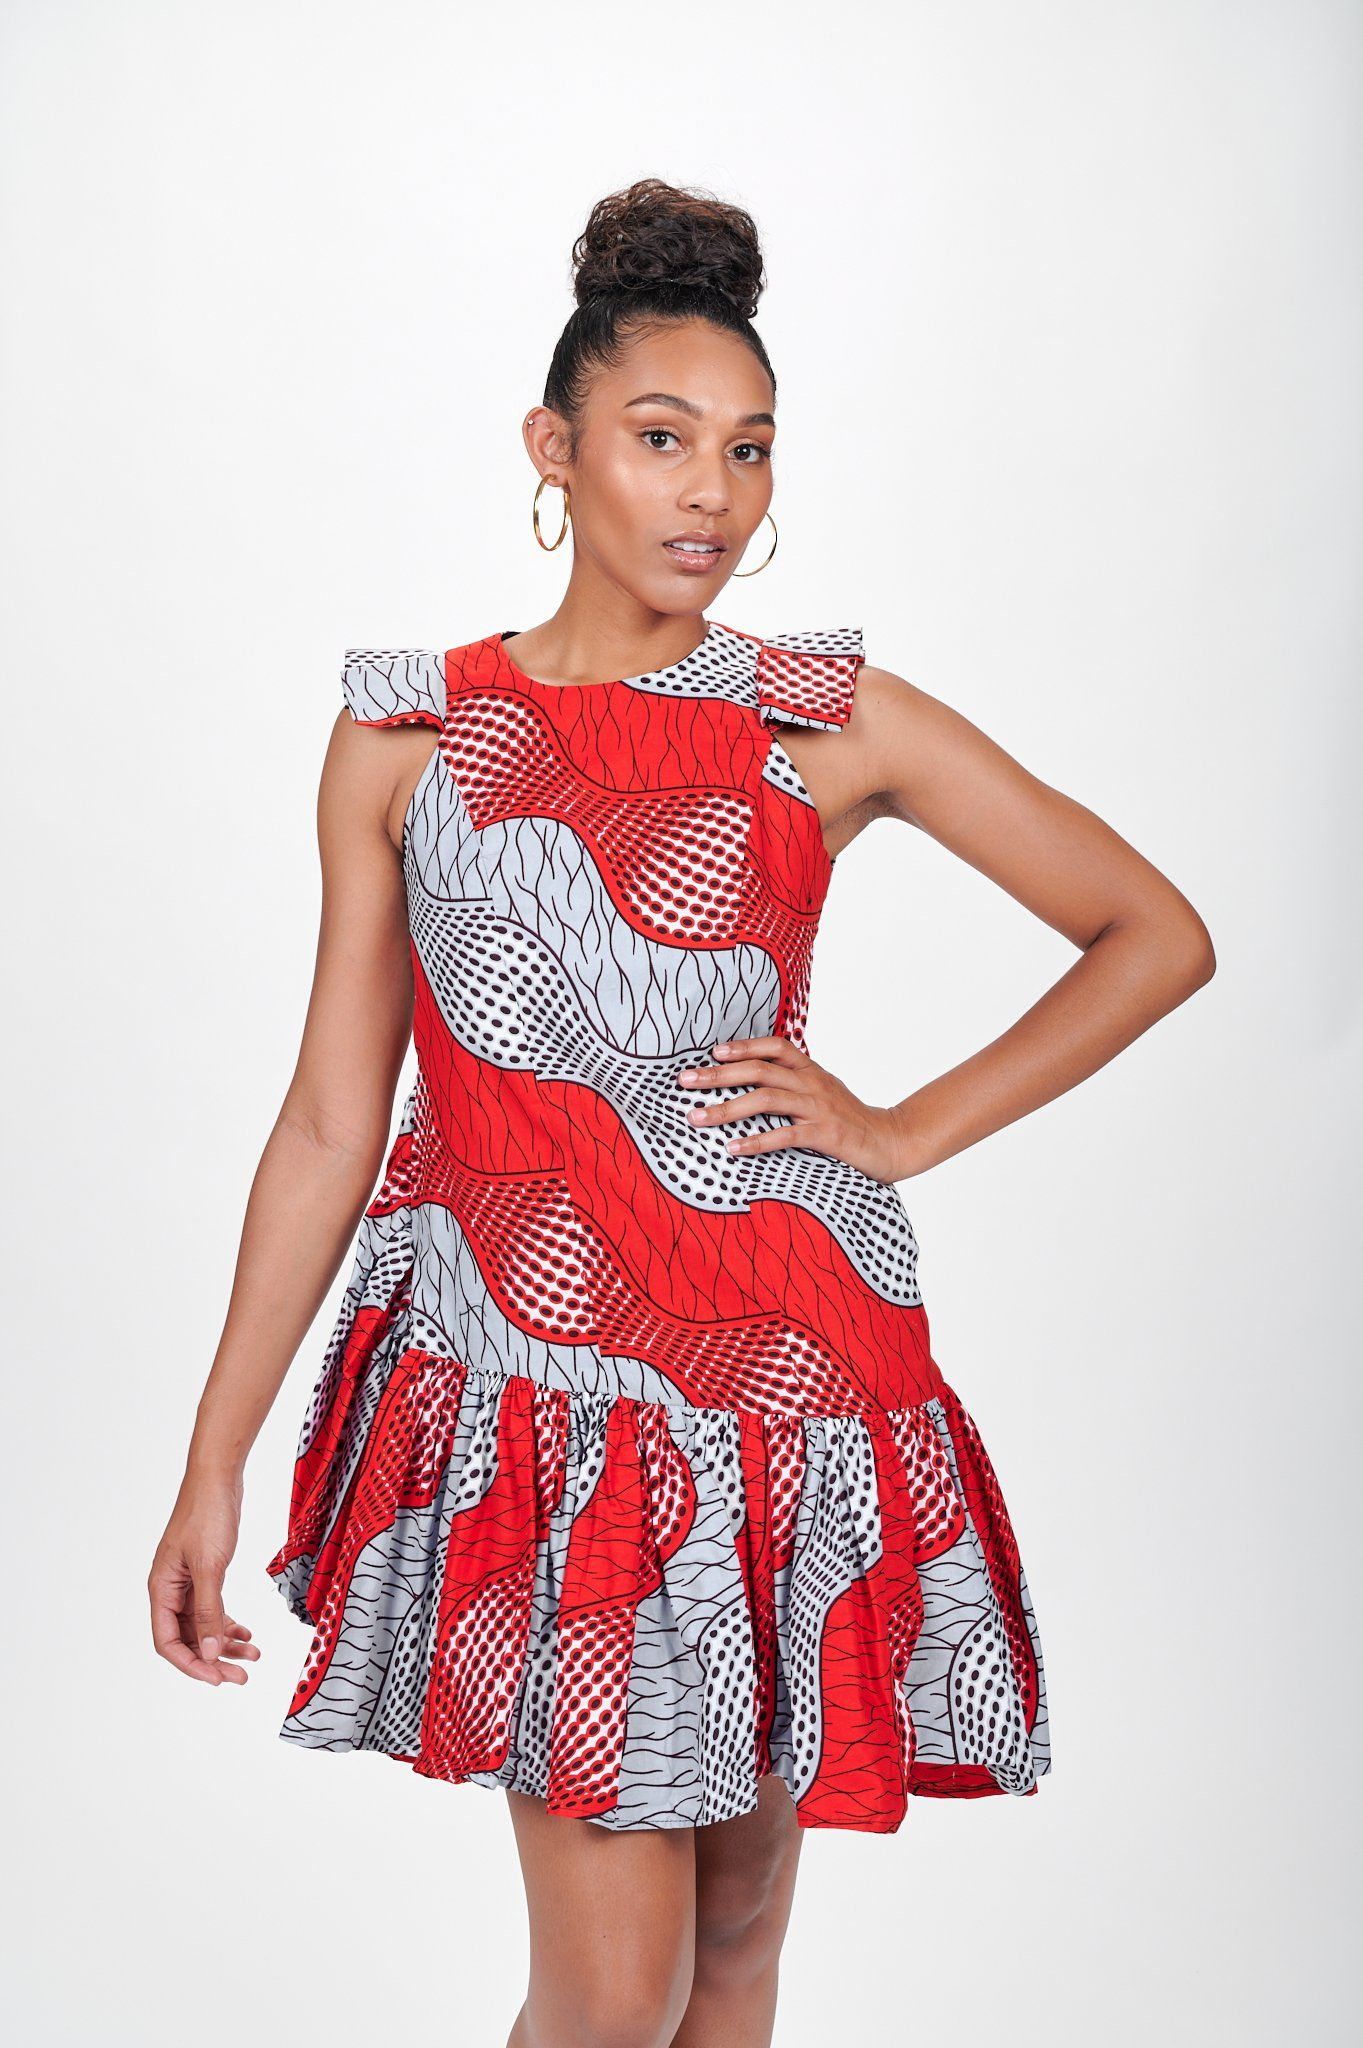 This African print dress is handmade with beautiful Ankara fabric and is effortless cute yet sexy. Dress it down with flat sandals/sneakers or dress it up with a pair of high heels and a belt to accentuate the waistline. 100% cotton wax Right-sided slanted neckline, right-sided off-shoulder/ left-sided cold shoulder A line puff sleeves with elastic self-tie belt 37 inches long Lined